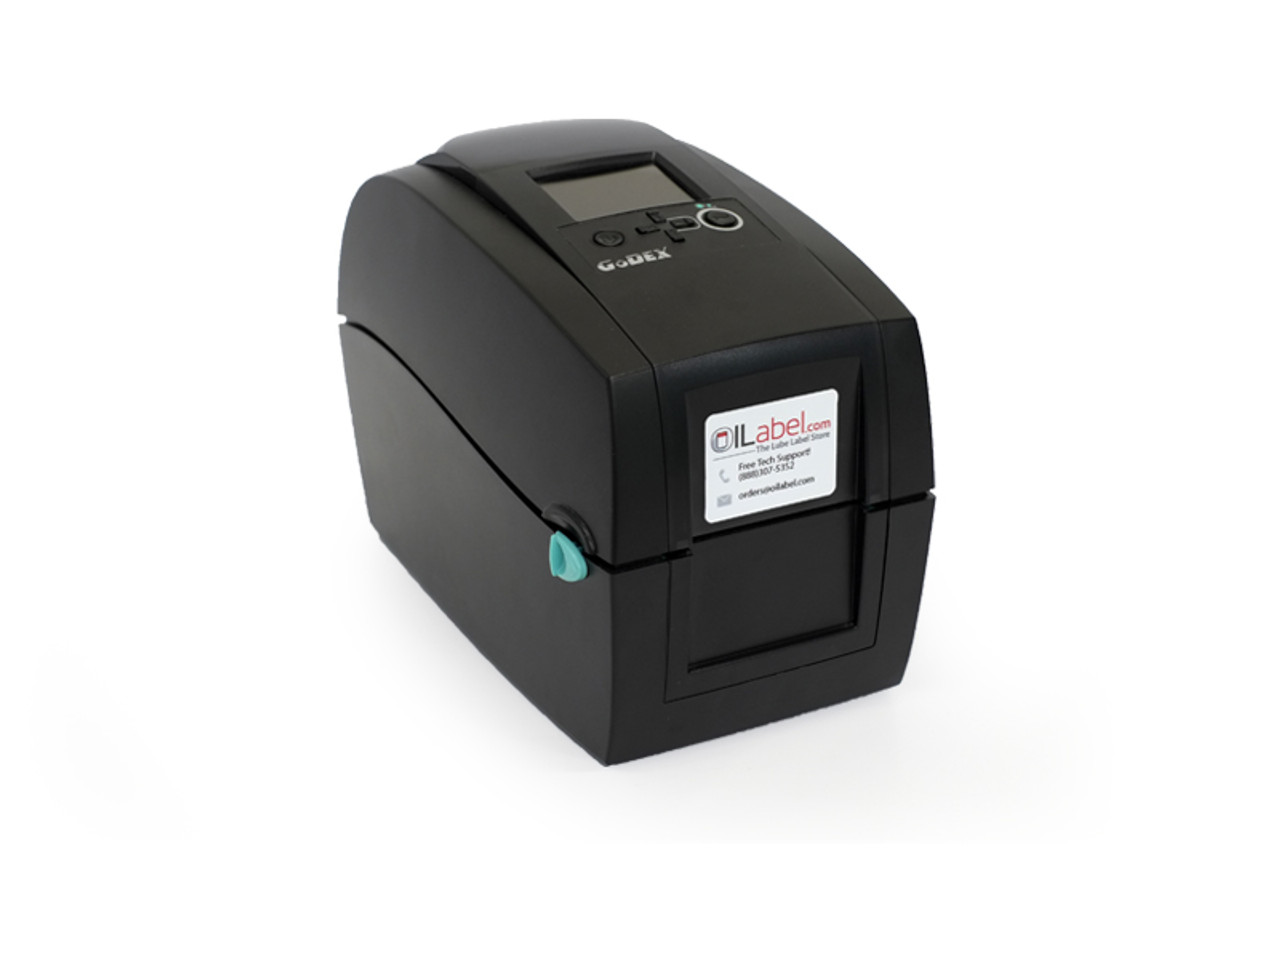 Godex RT200i Oil Sticker Printer